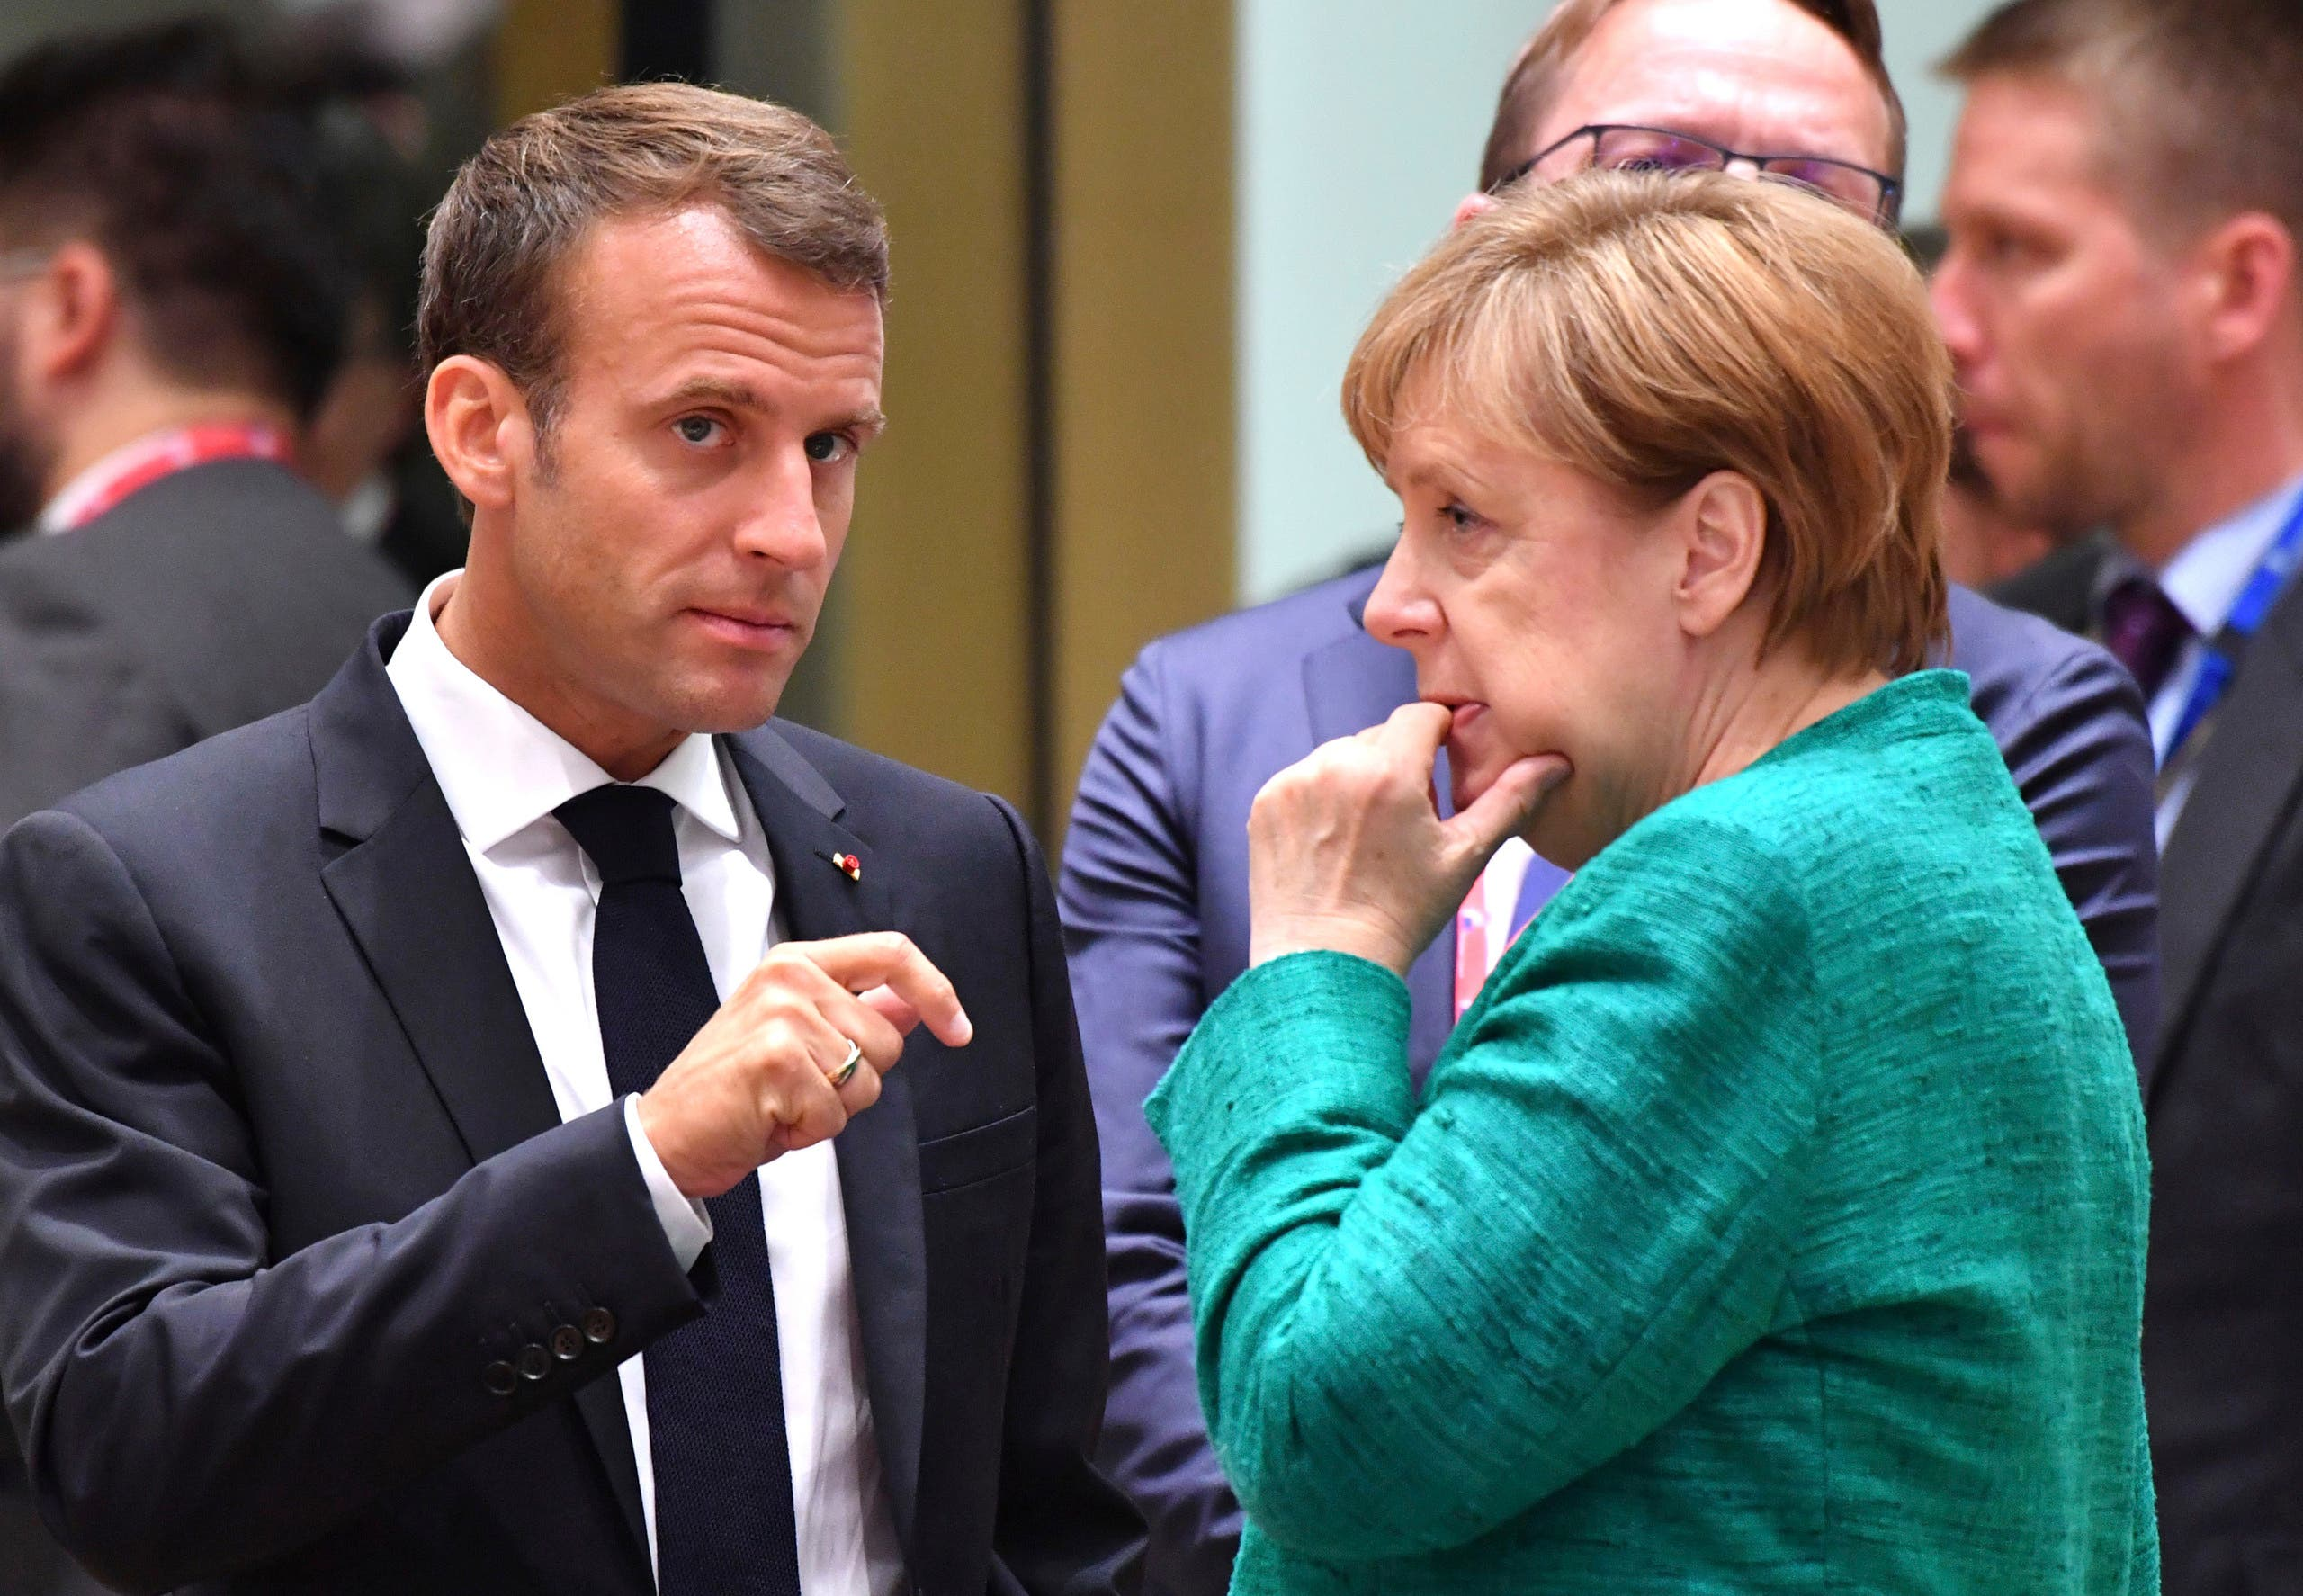 French President Emmanuel Macron, left, speaks with German Chancellor Angela Merkel during a round table meeting at an EU summit in Brussels, Thursday, June 28, 2018.